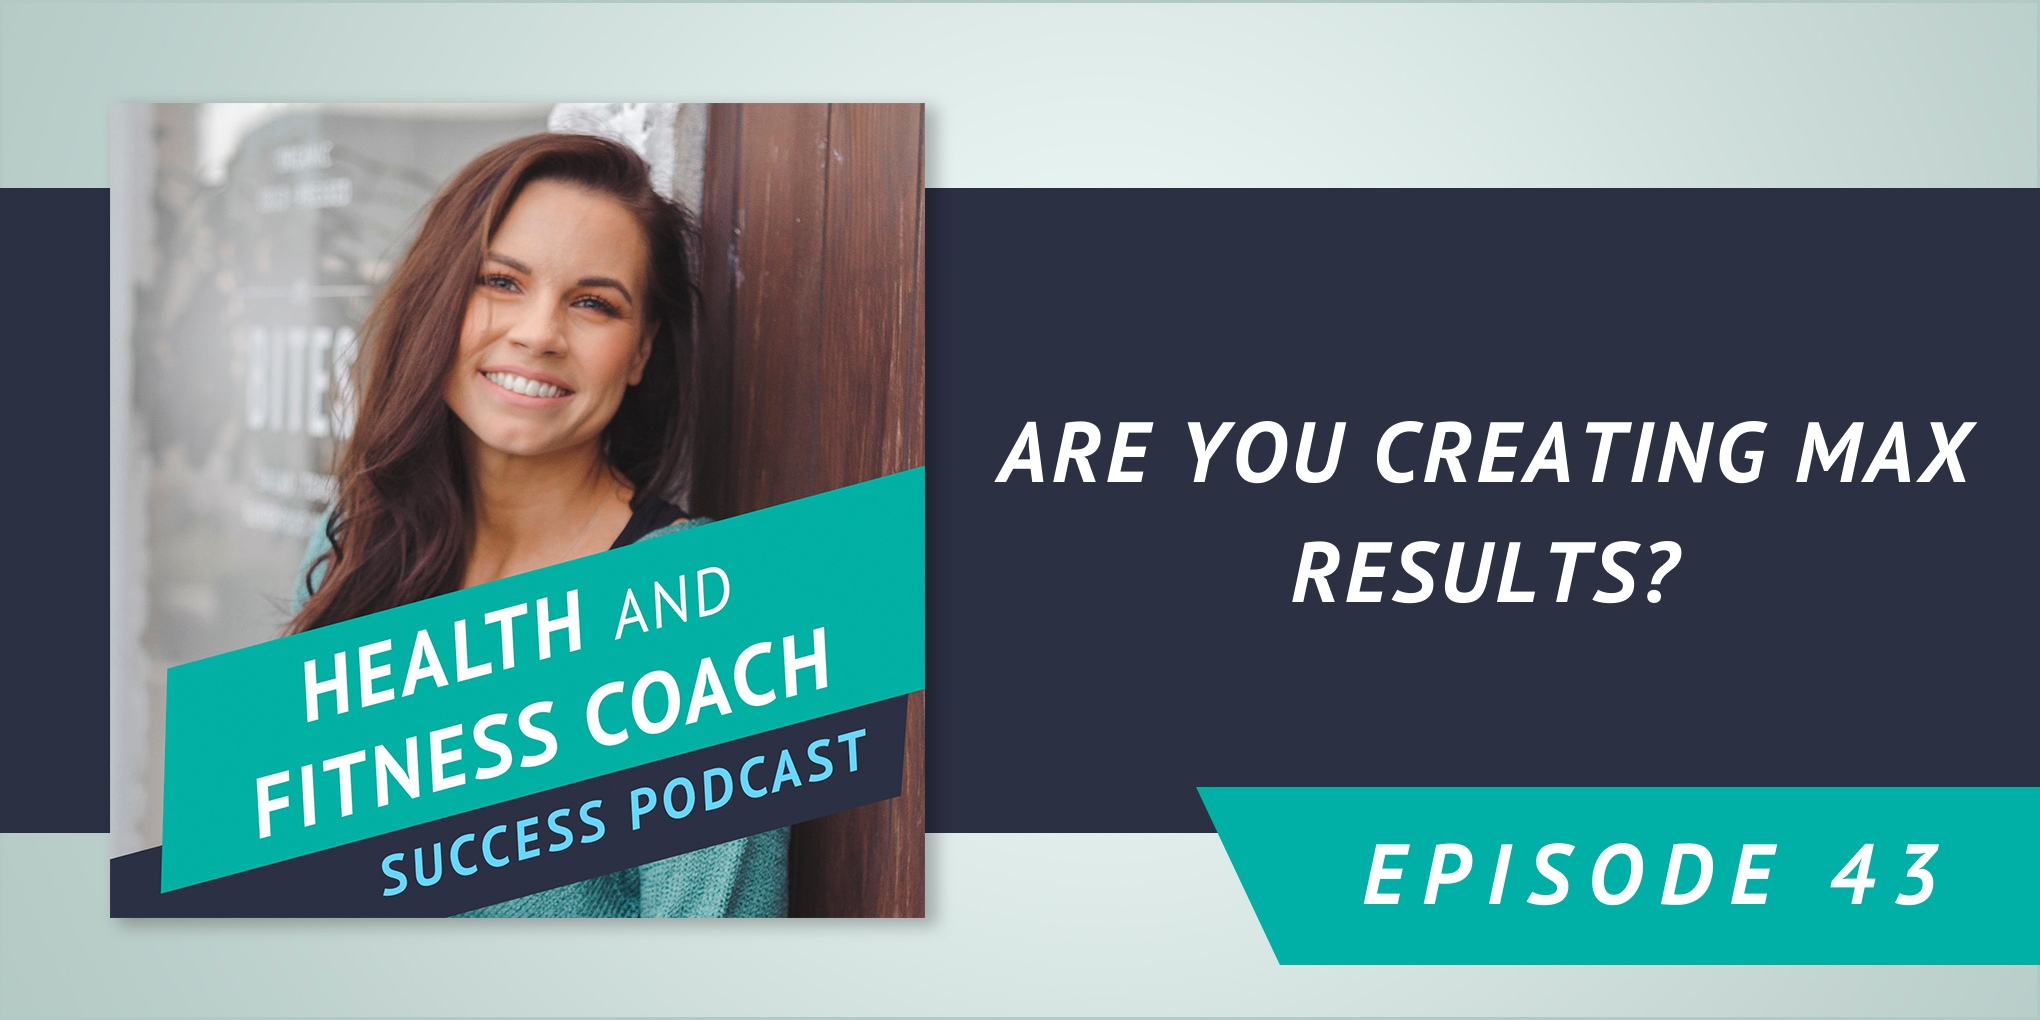 Are You Creating Max Results?